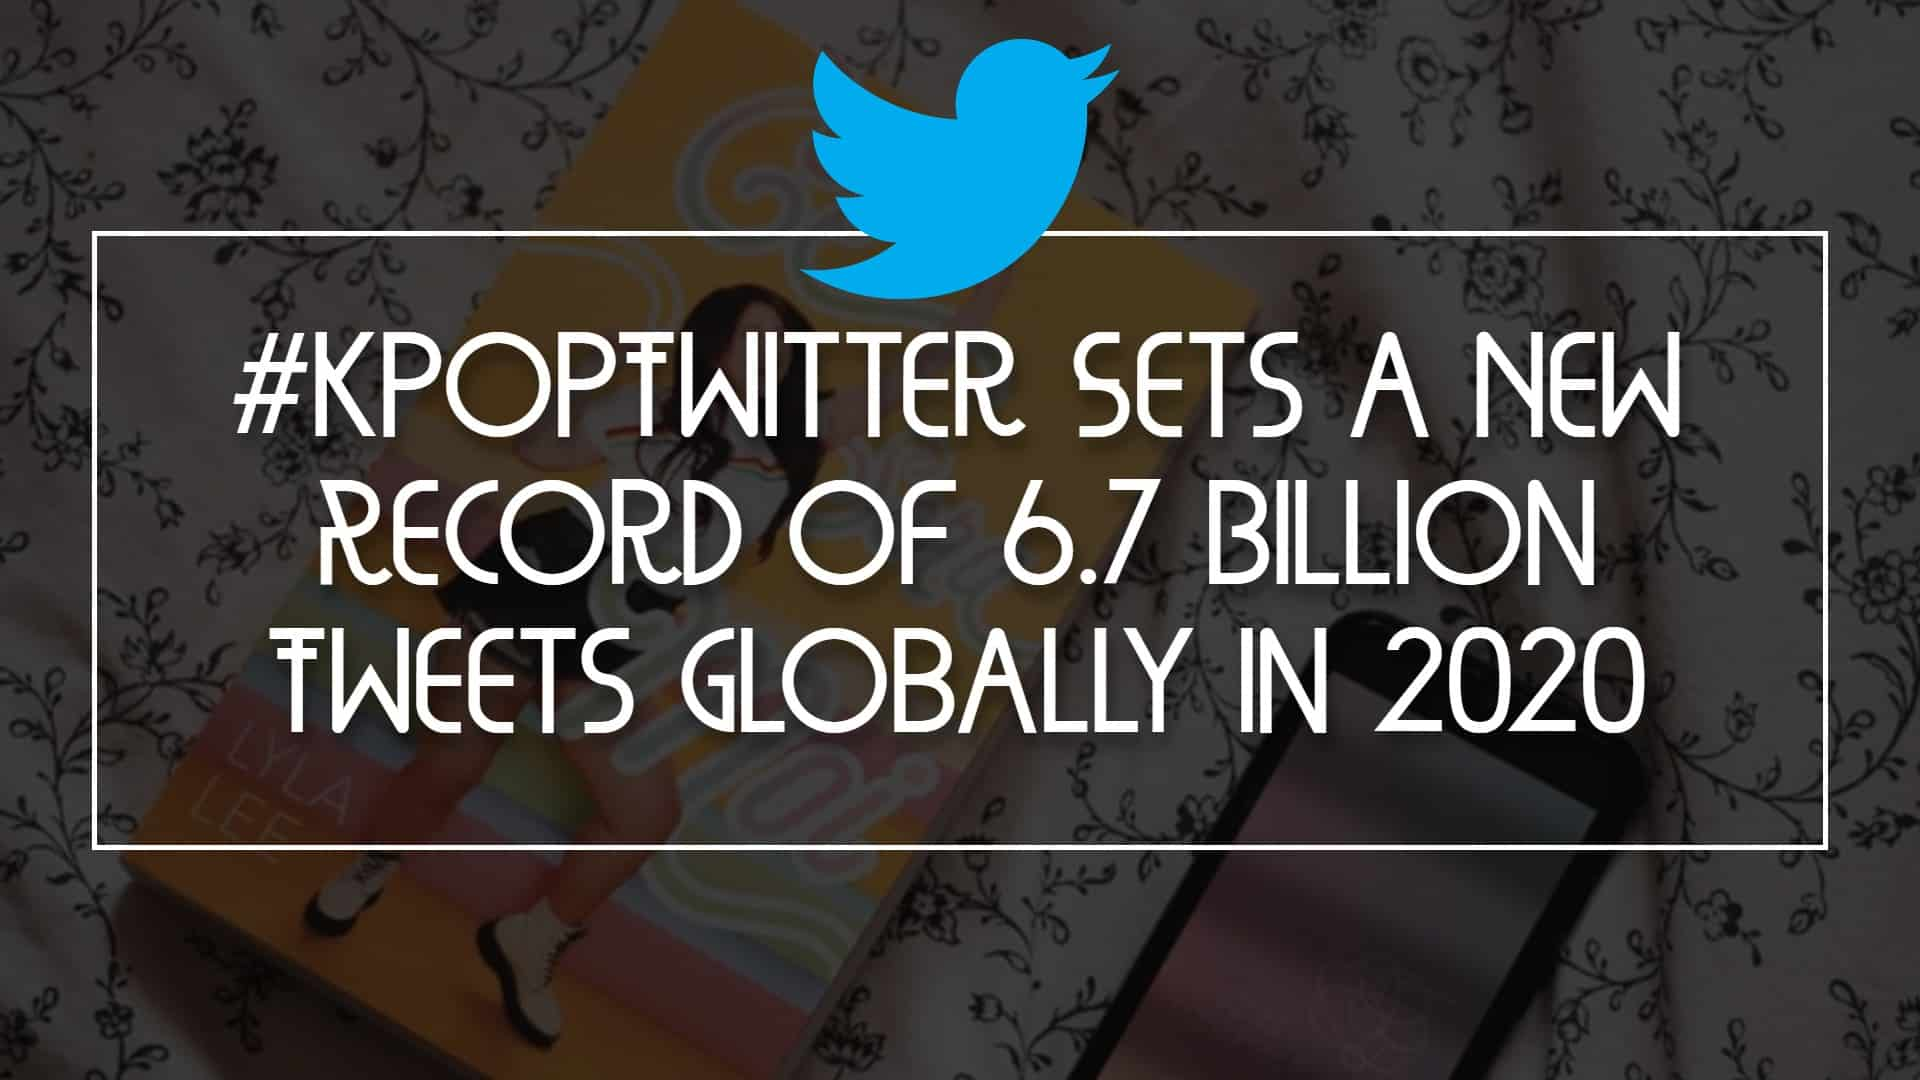 #KpopTwitter Sets a New Record of 6.7 Billion Tweets Globally in 2020